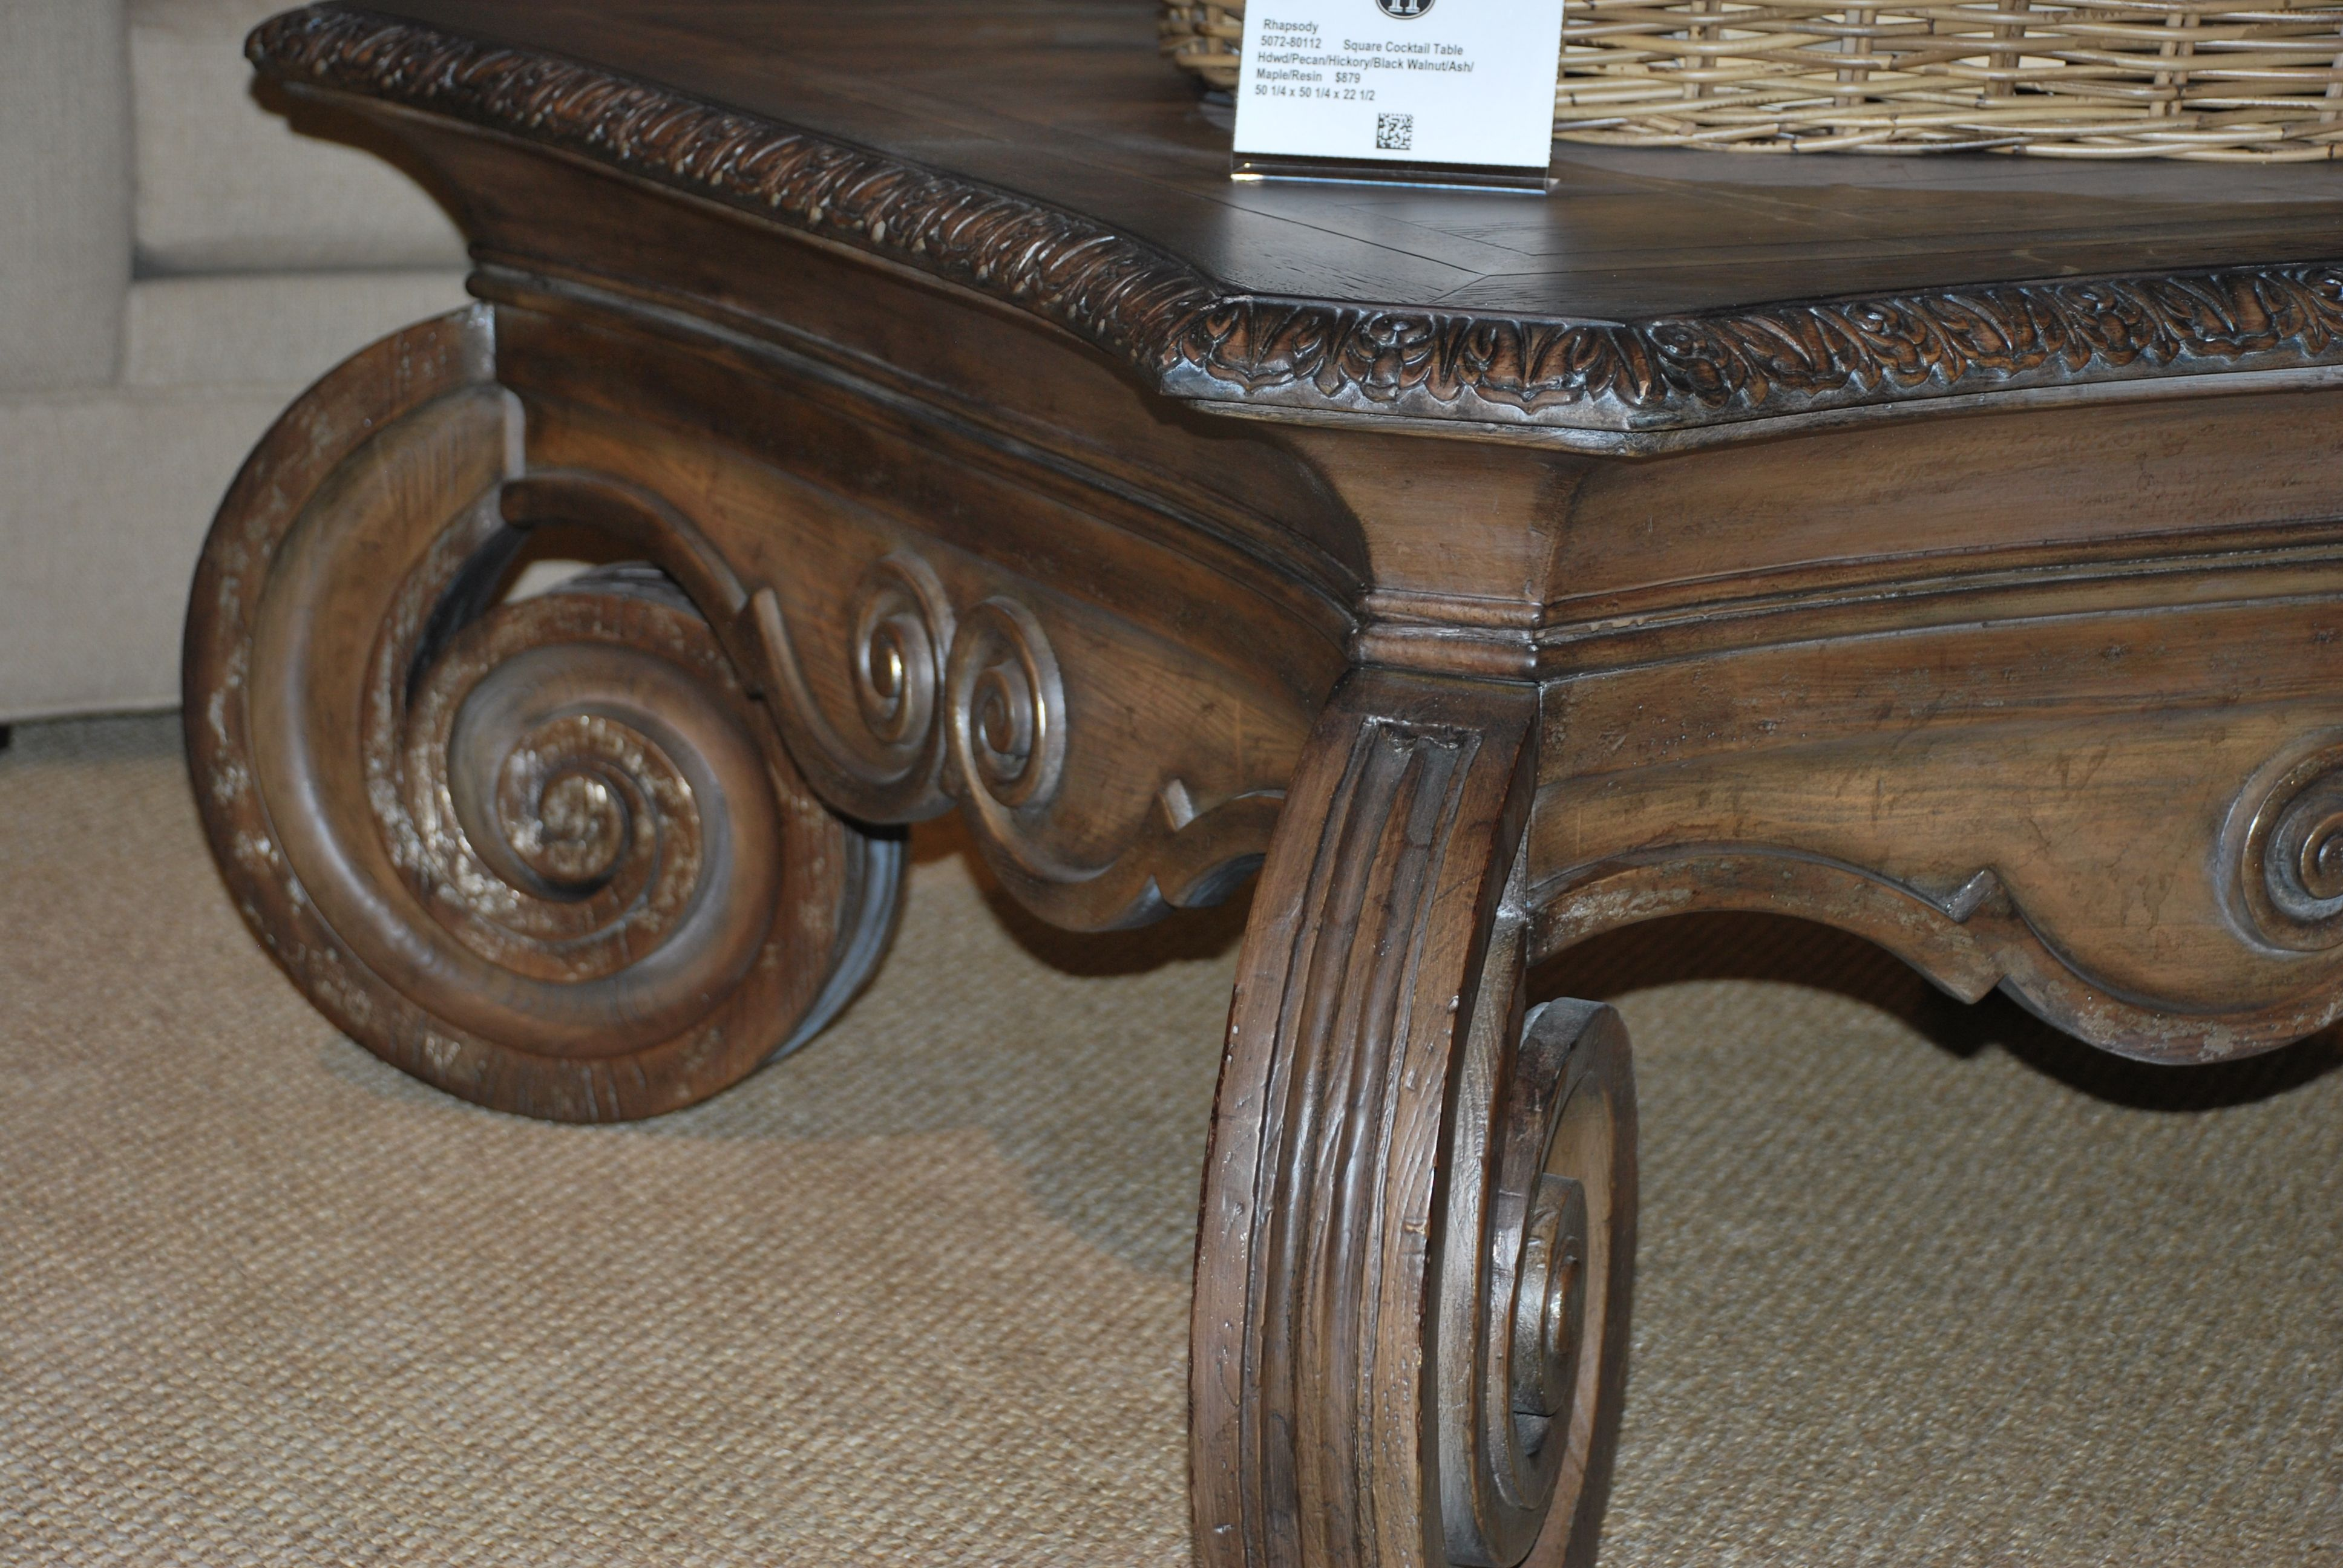 Hooker Furniture Over-scaled Scroll Motif. http://www.thehome.com/small-spaces-to-overscaled-opposites-attract/ #hpmkt